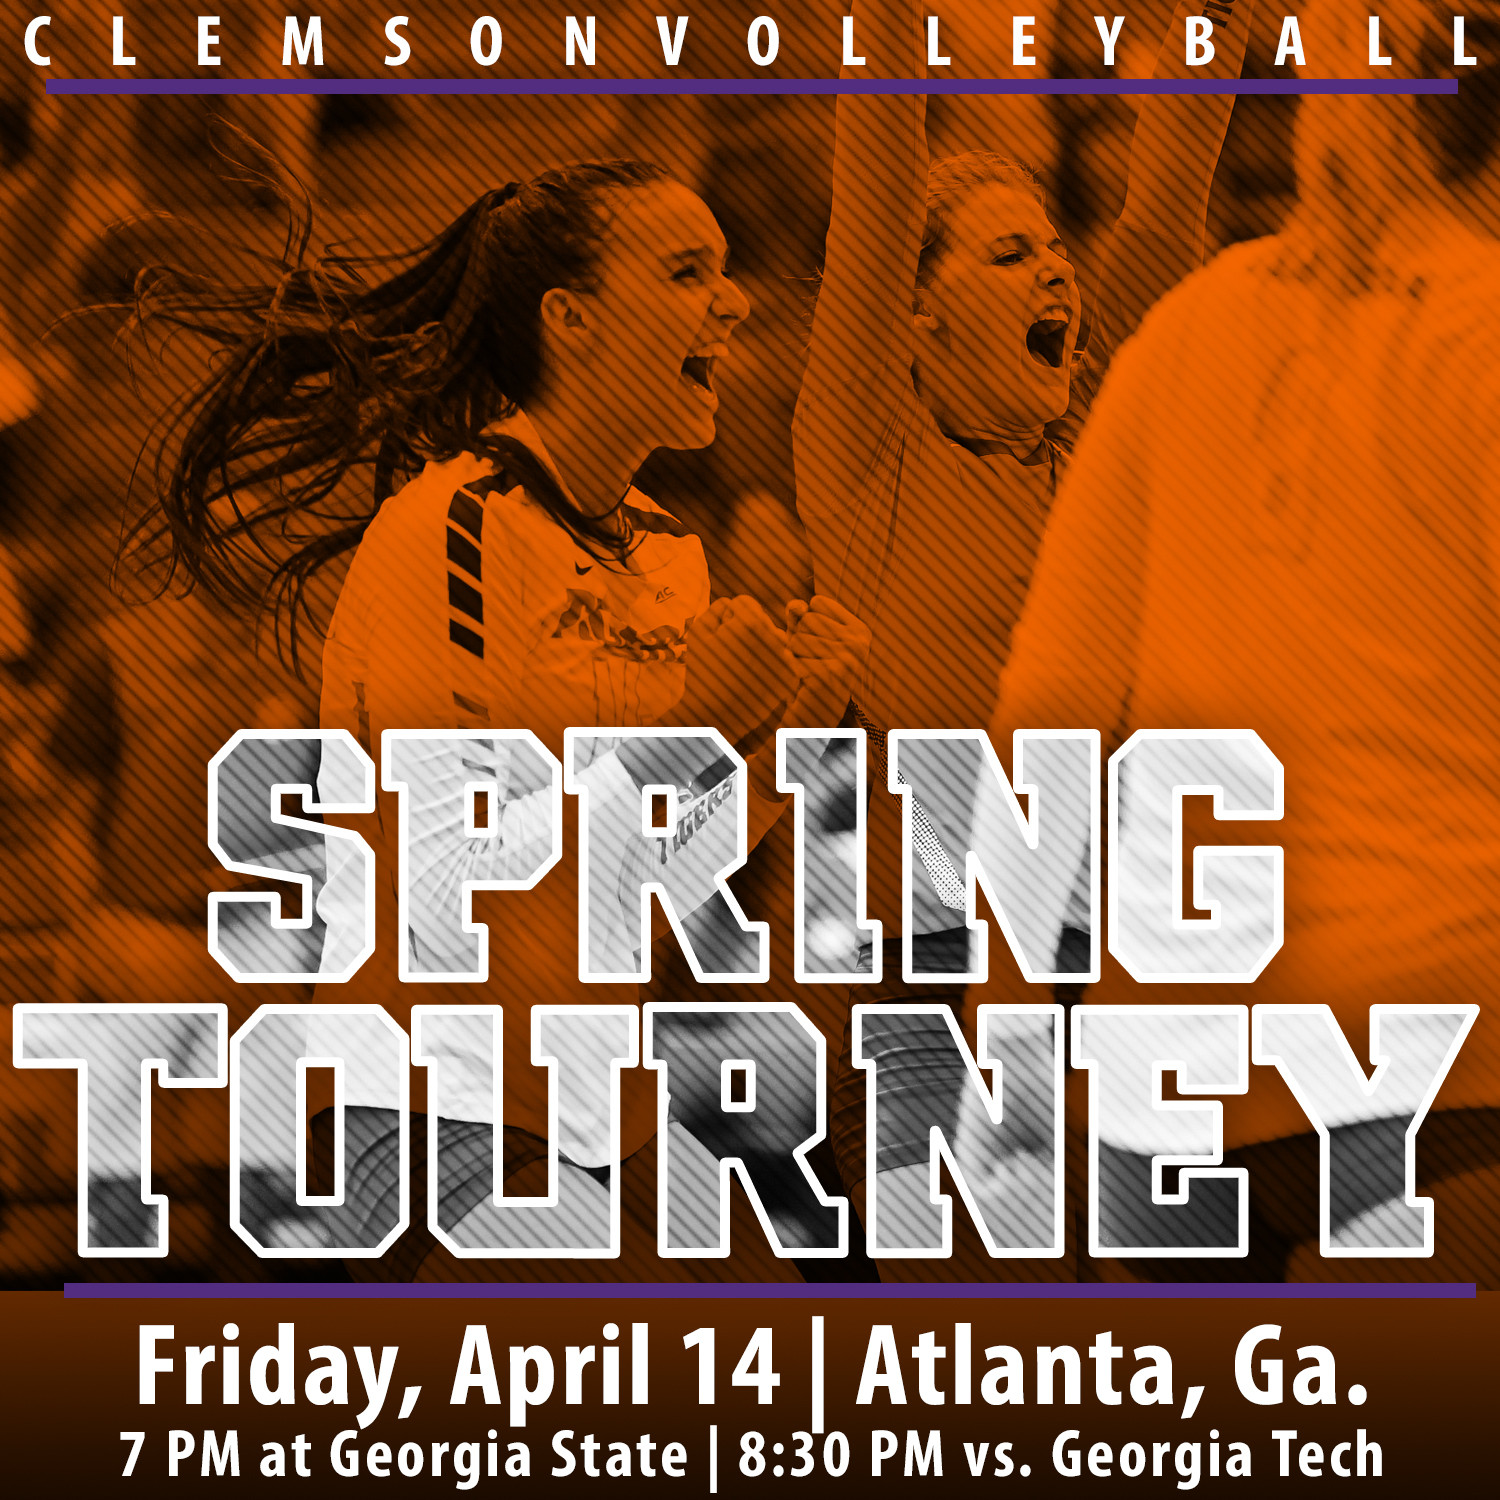 Tigers Travel to Atlanta for Round Robin Tourney Friday